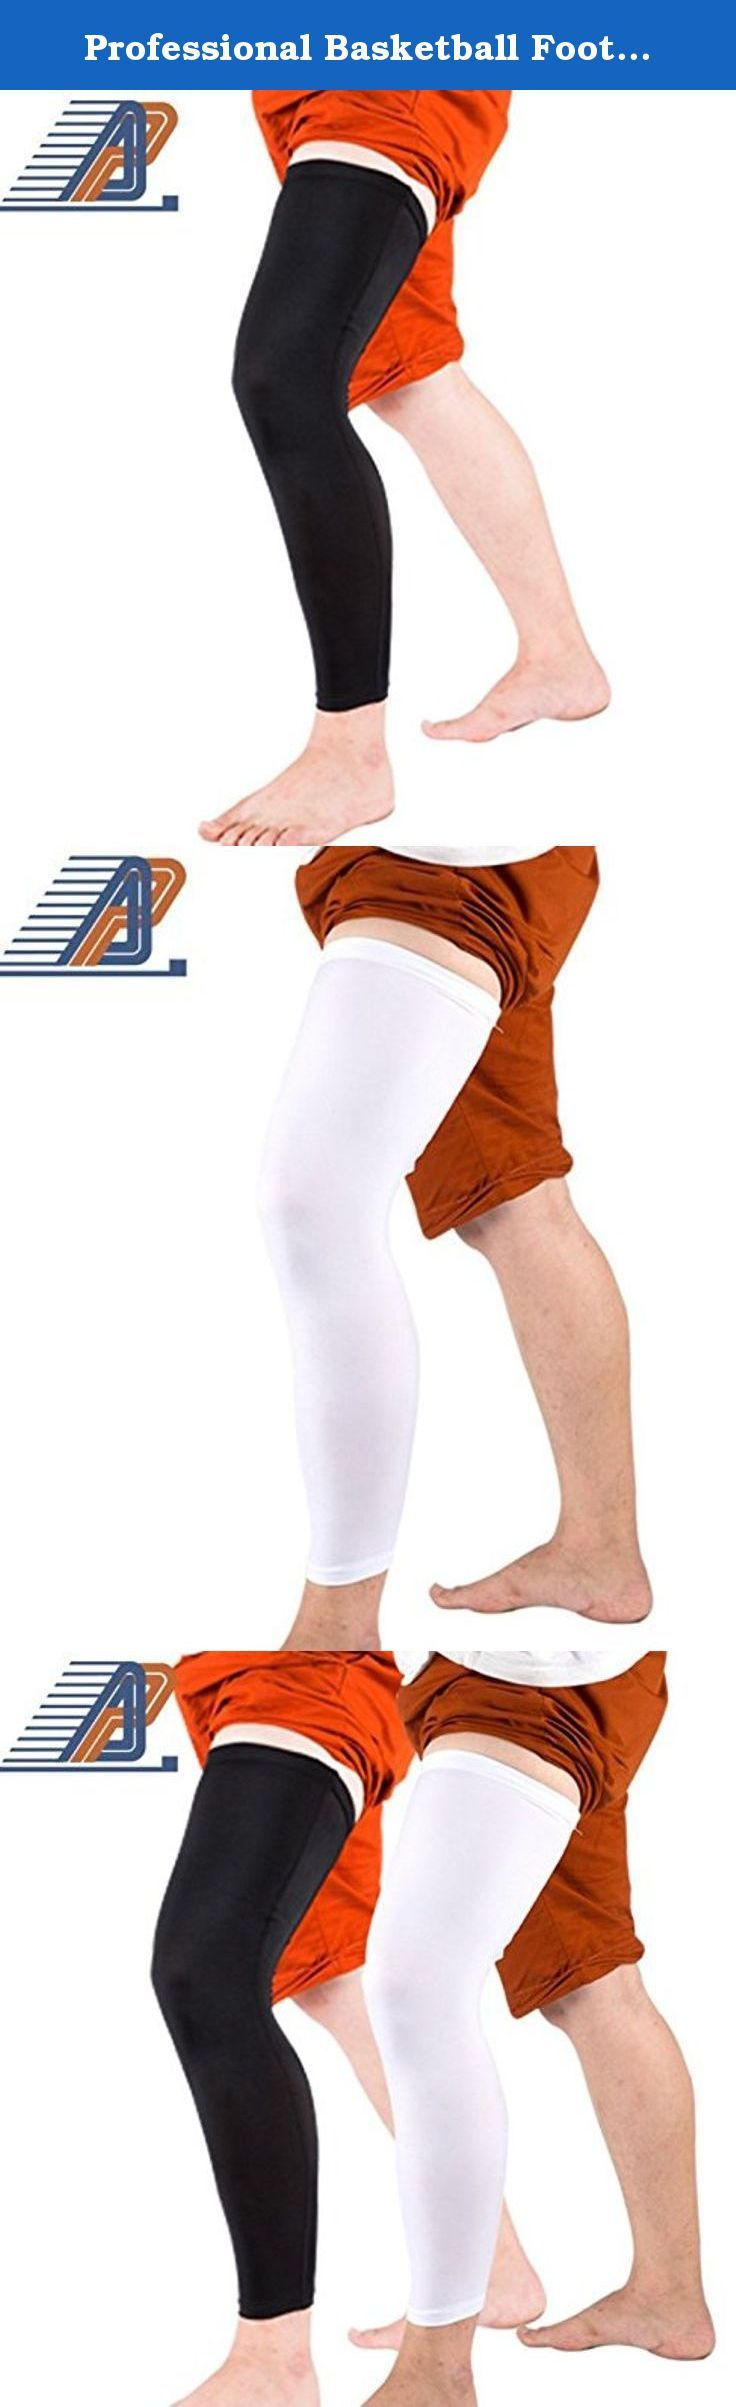 Professional Basketball Football Shin Guard Leg Compression Sleeve for Women Men (XL). Size M:length 51 cm,fit for weight bellow 62 kg; Size L:length 52 cm,fit for weight 62-72 kg; Size XL:length 53 cm,fit for weight above 72 kg;.